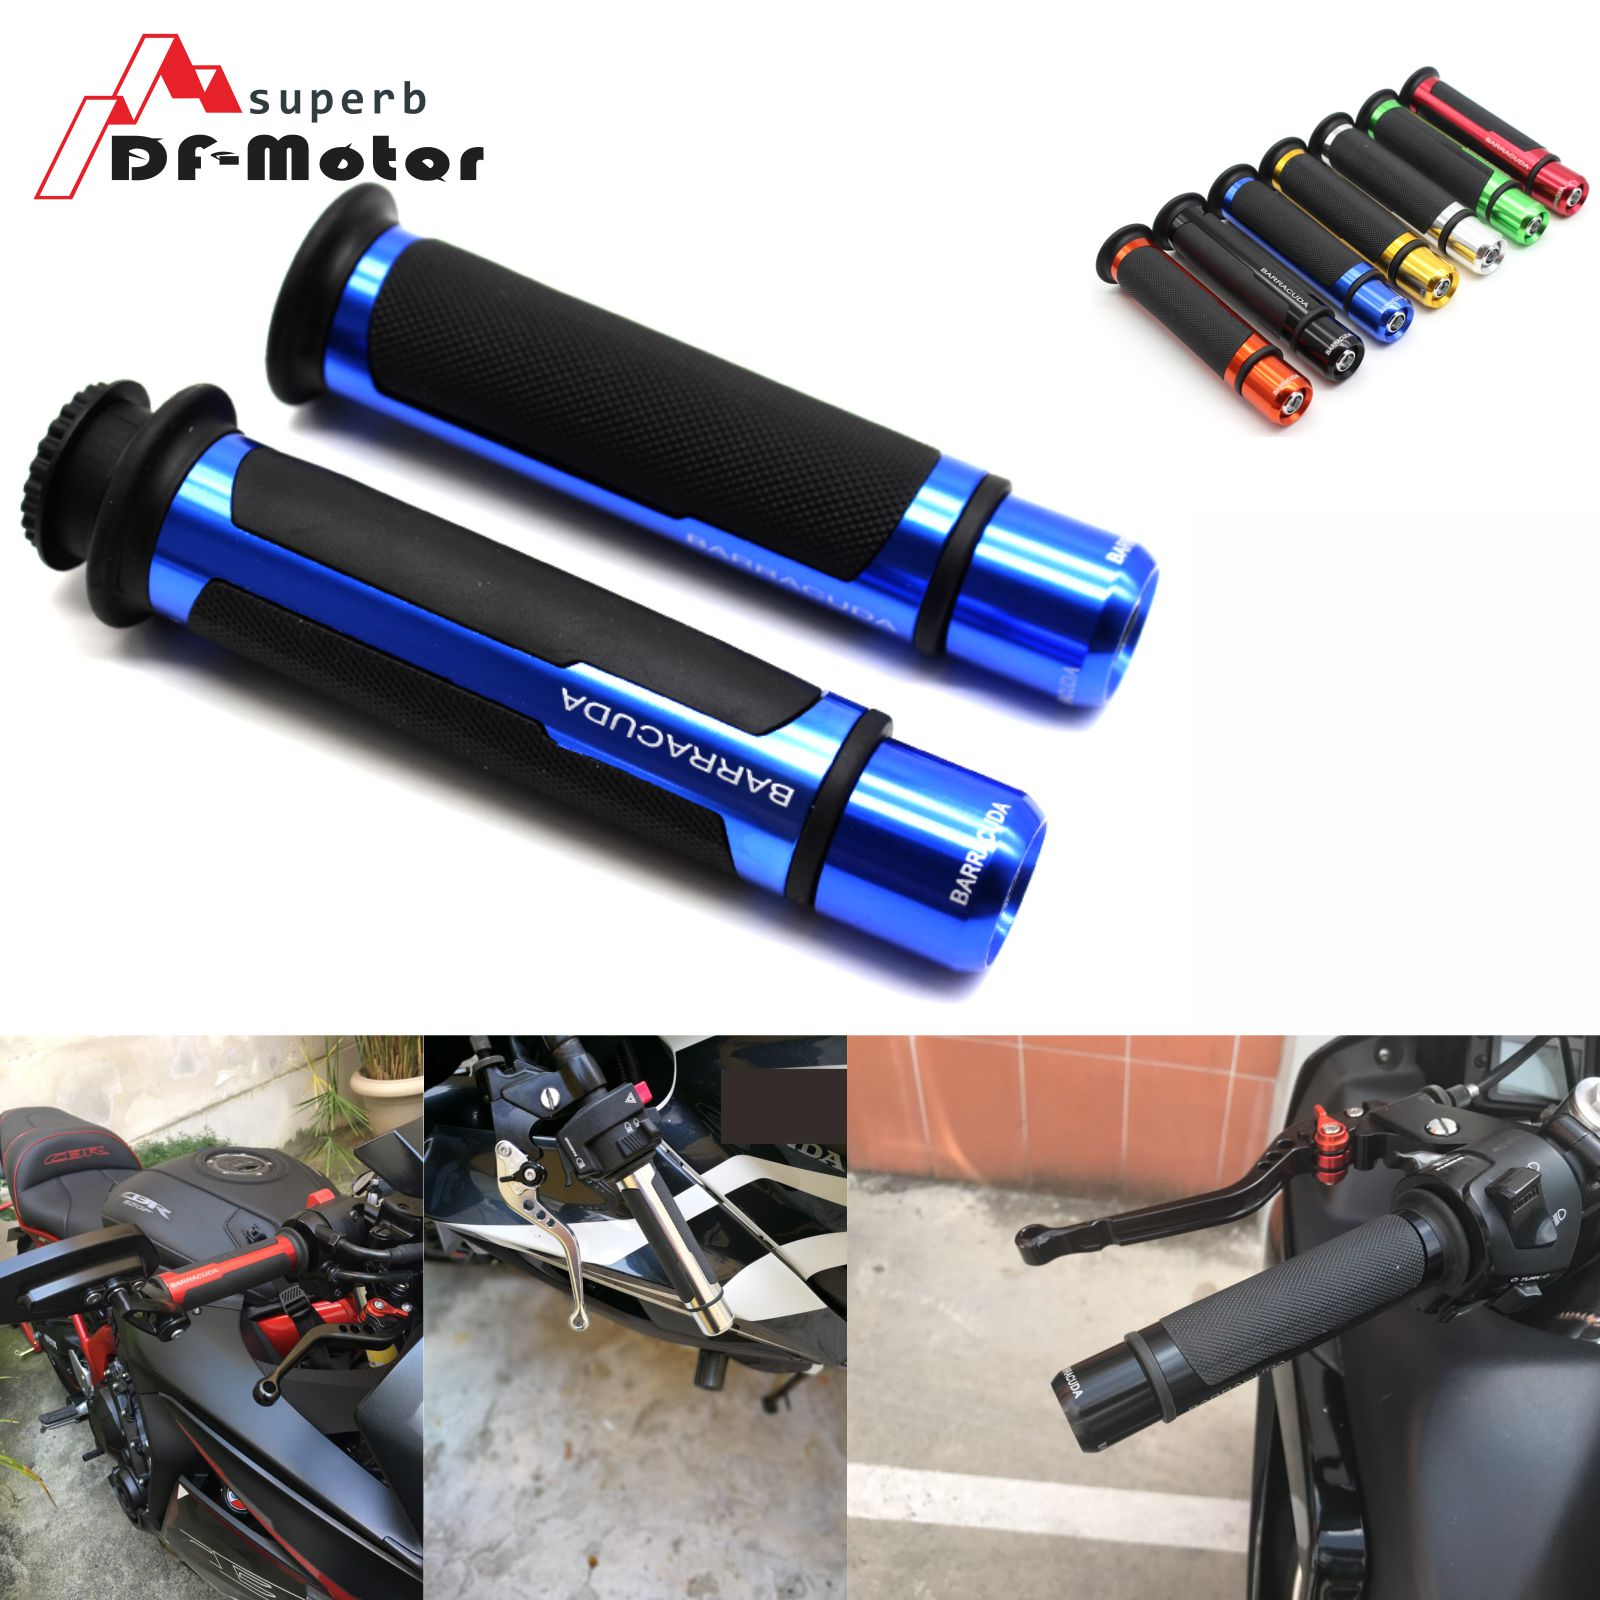 Motorcycle Accessories Handle Bar Grips Motorbike Handlebars For Honda CBR 250R 400RR 500R 600 600F 600RR F2 F3 F4 F4I 1000RR